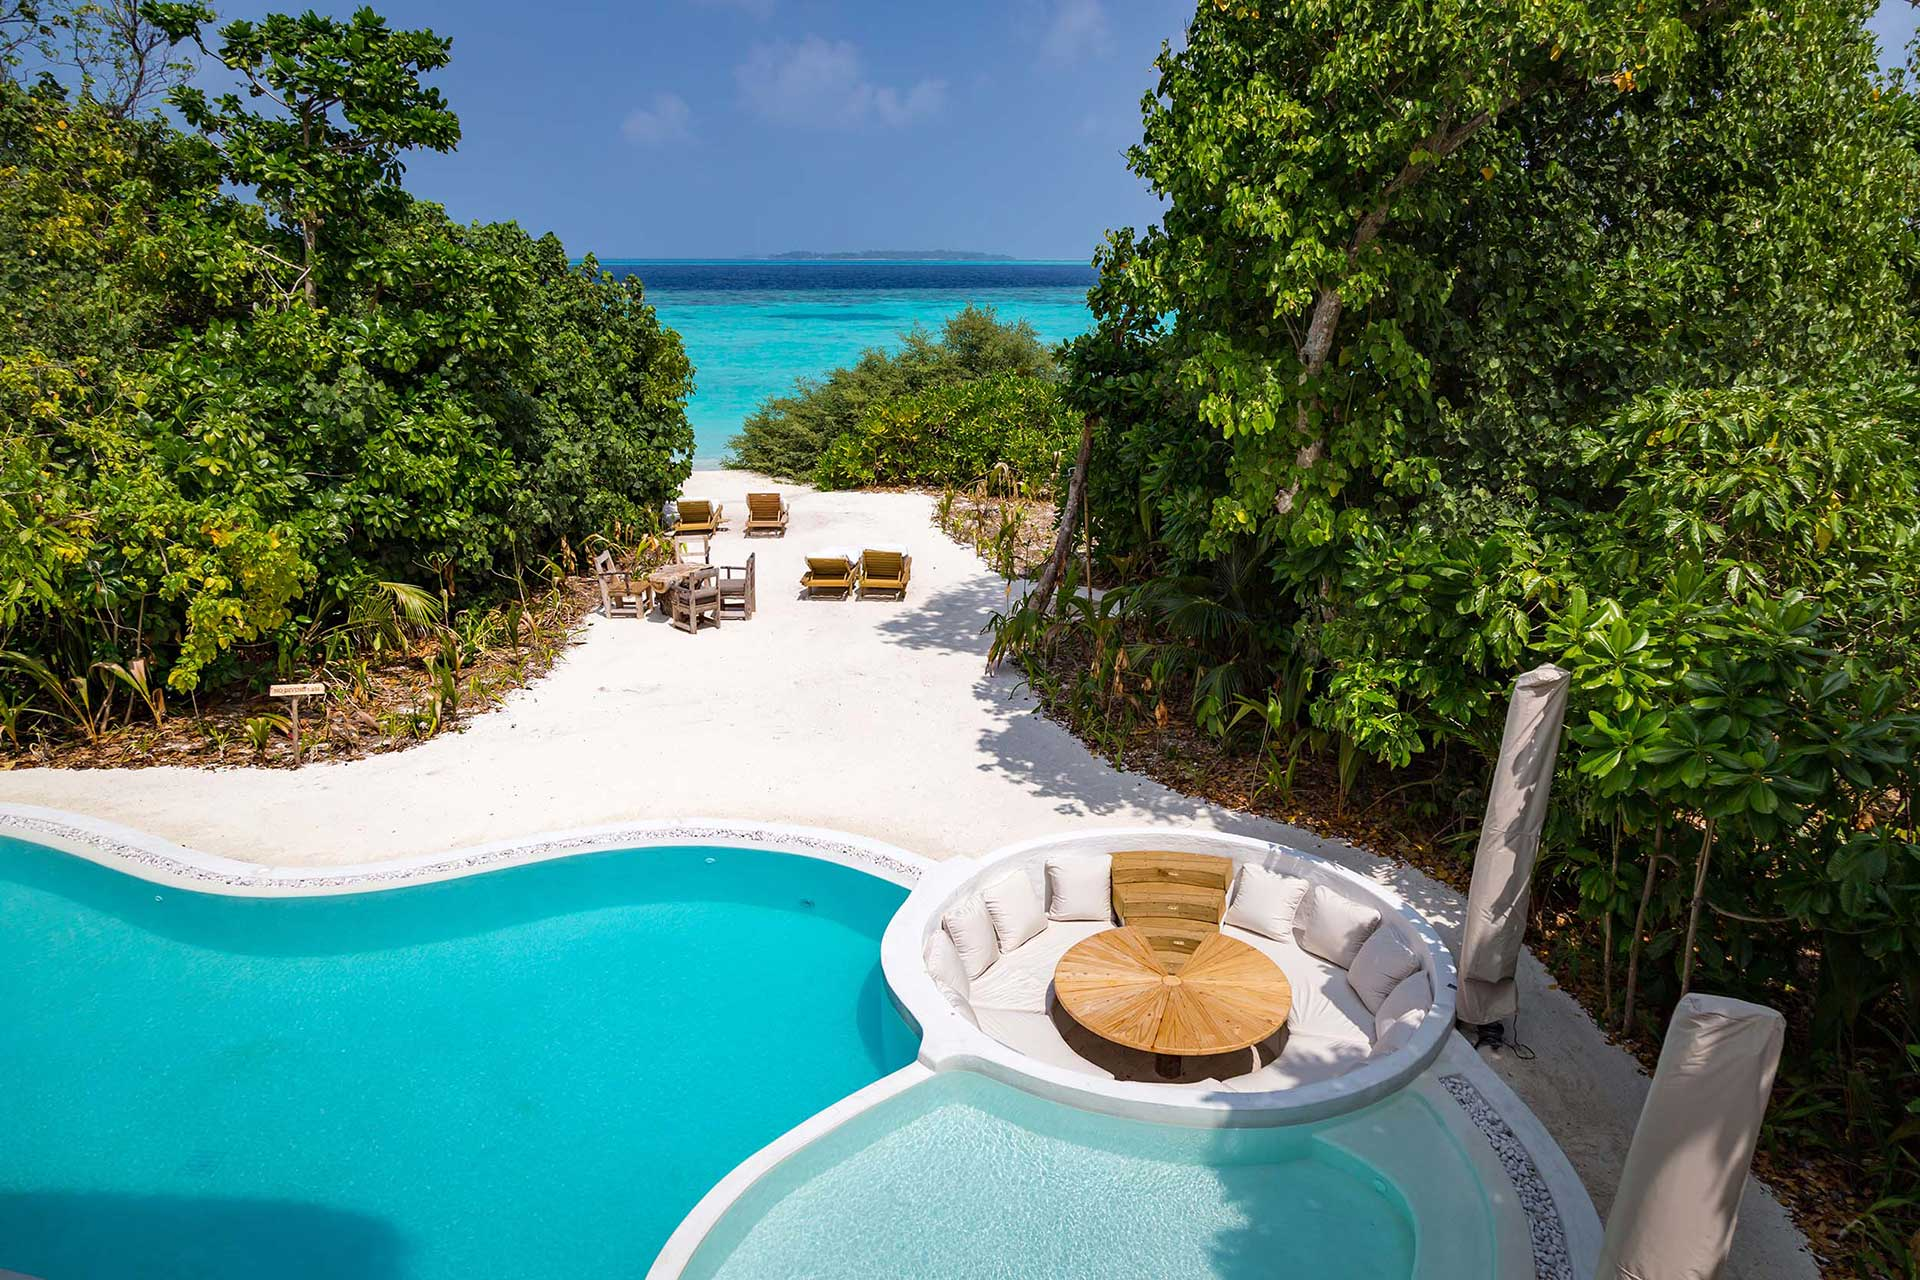 Malediven_Soneva-Fushi_Villa-Suite-3-Bedroom-with-Pool-V.5_Pool-by-Martin-Whiteley